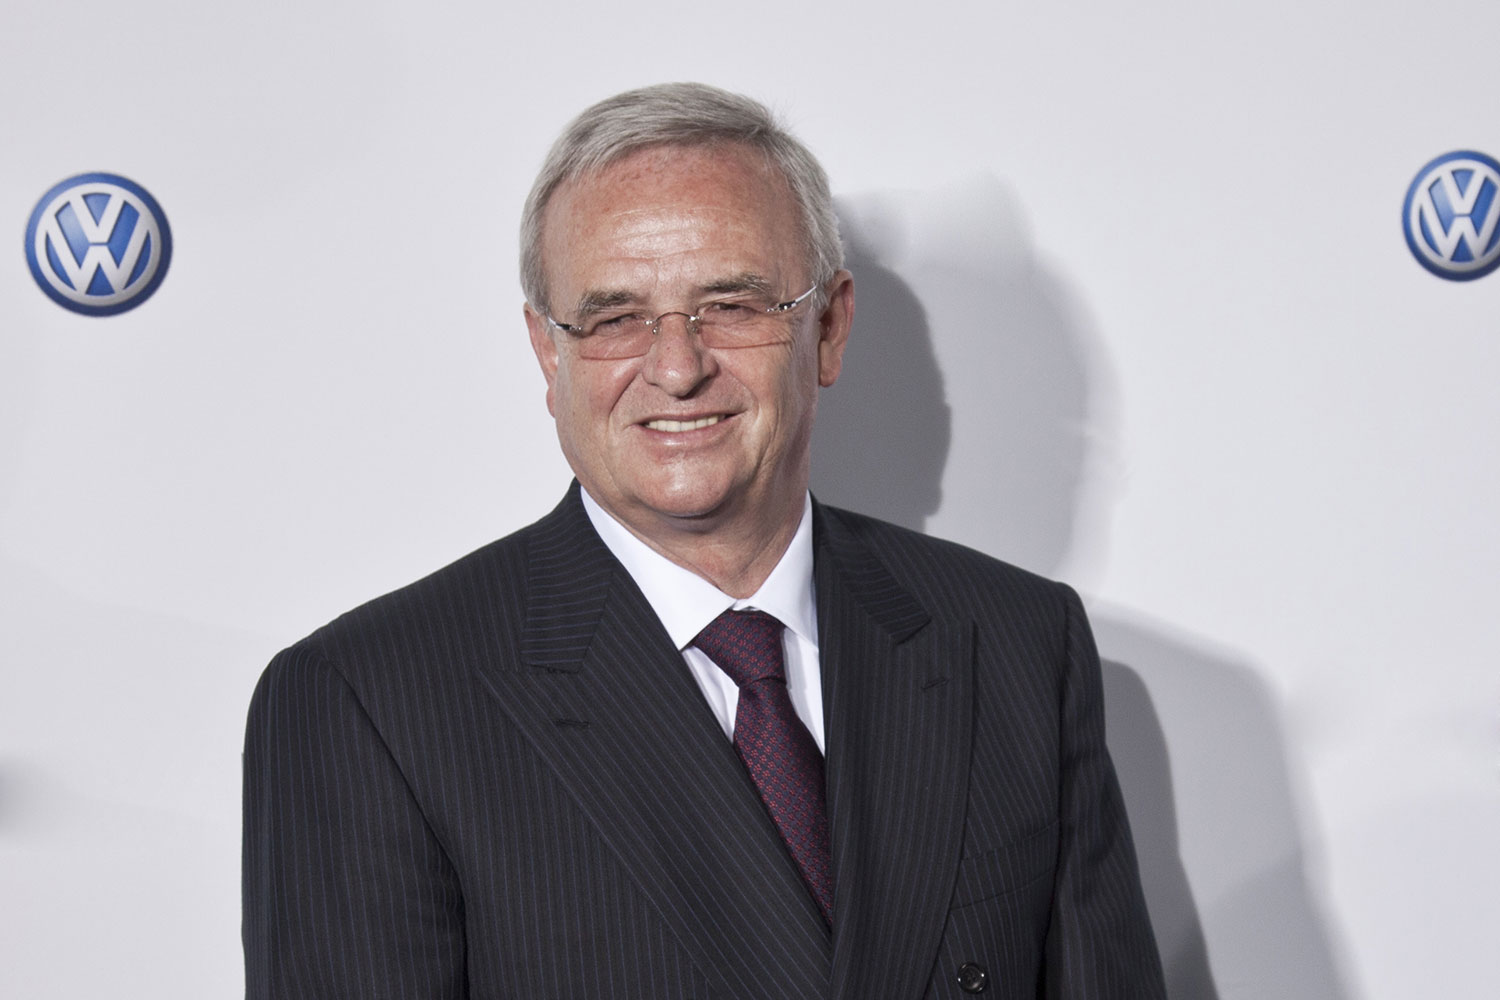 Wolkswagen S Ceo Martin Winterkorn Steps Down As Ceo Amid